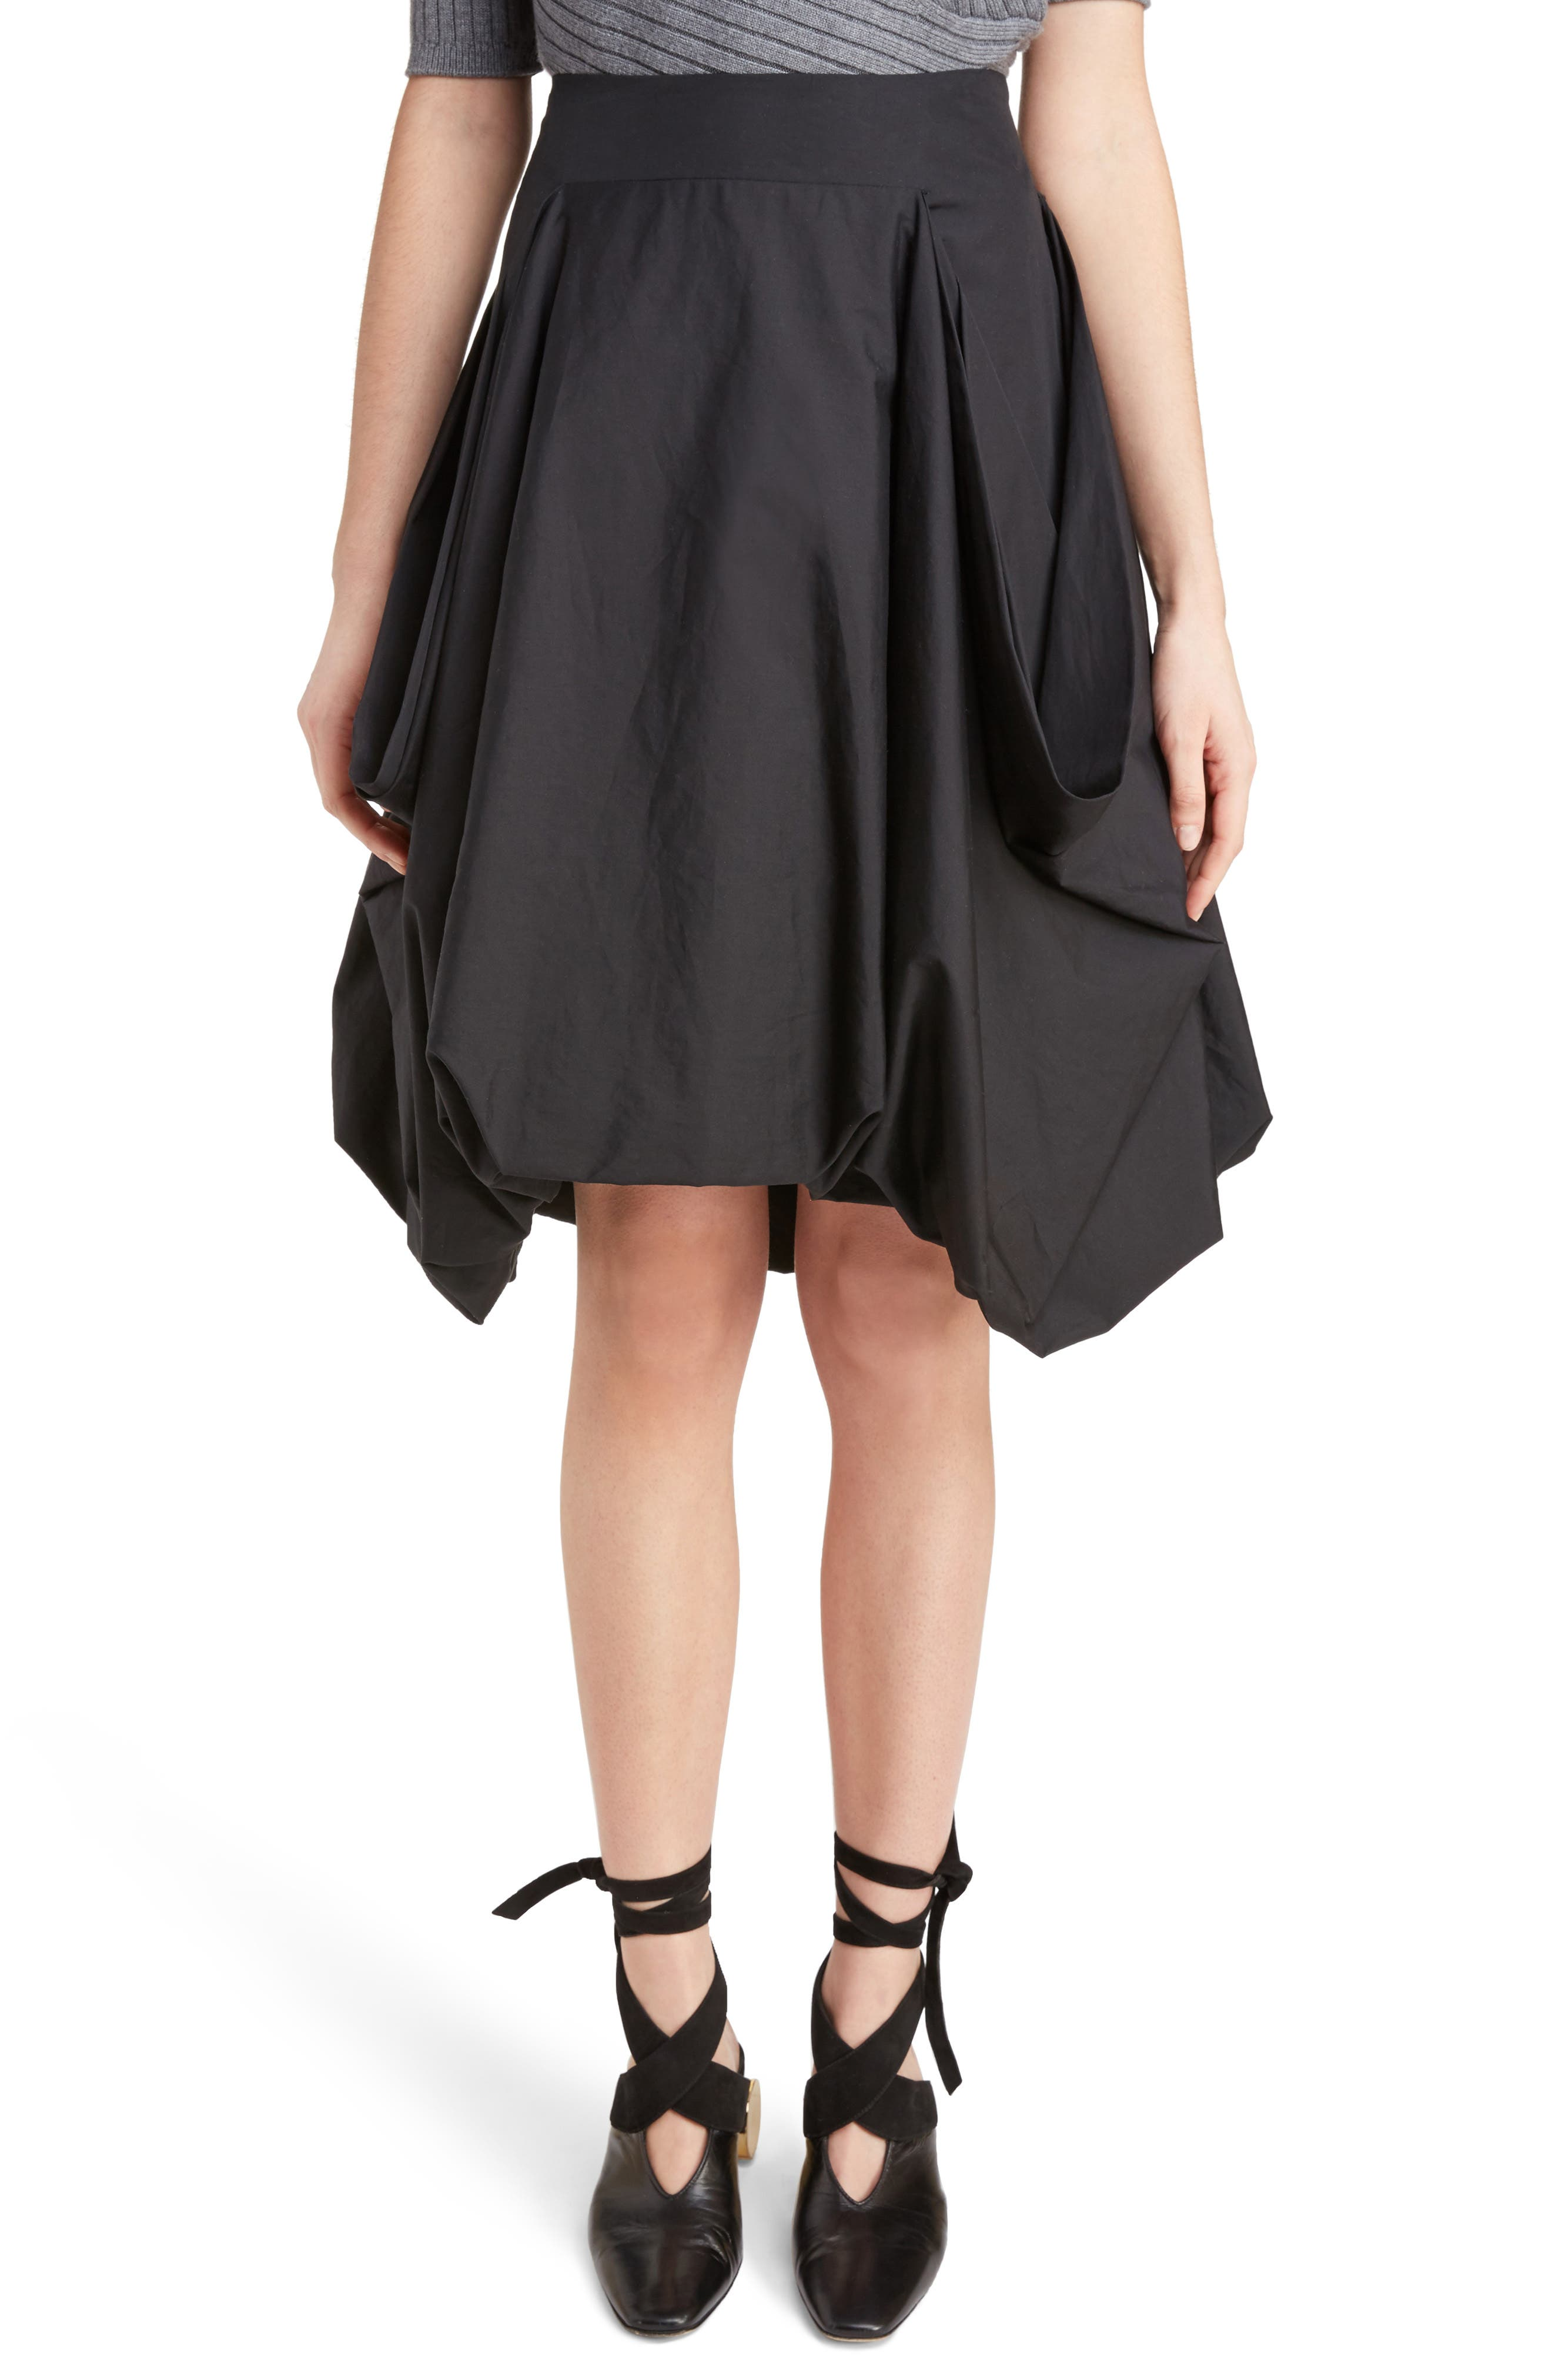 Alternate Image 1 Selected - J.W.ANDERSON Drape Pockets Pleated Skirt